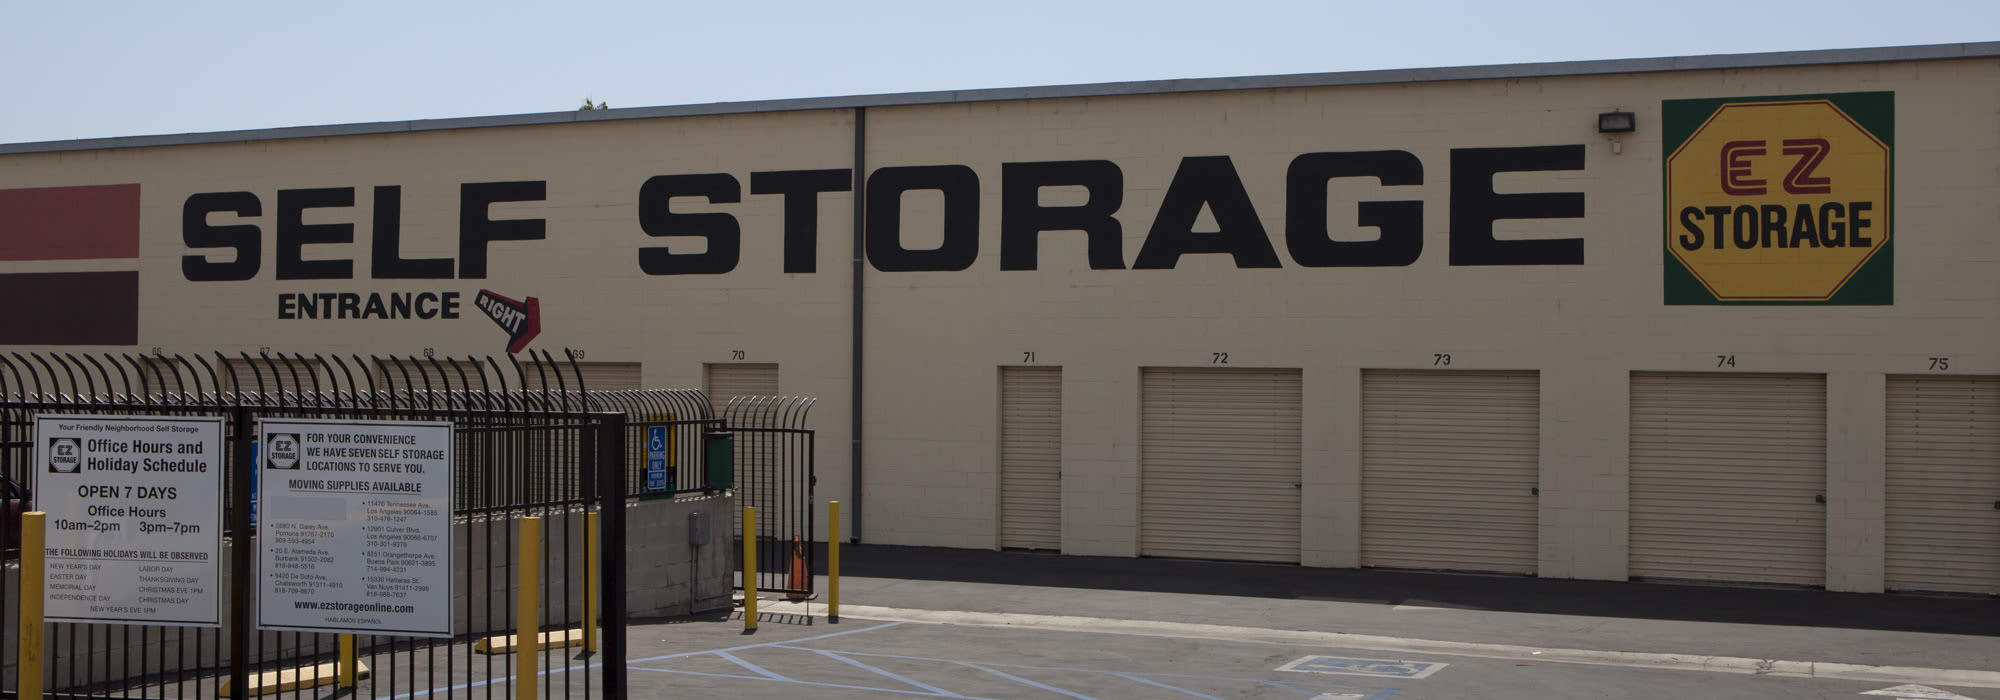 Self Storage In Burbank Ca